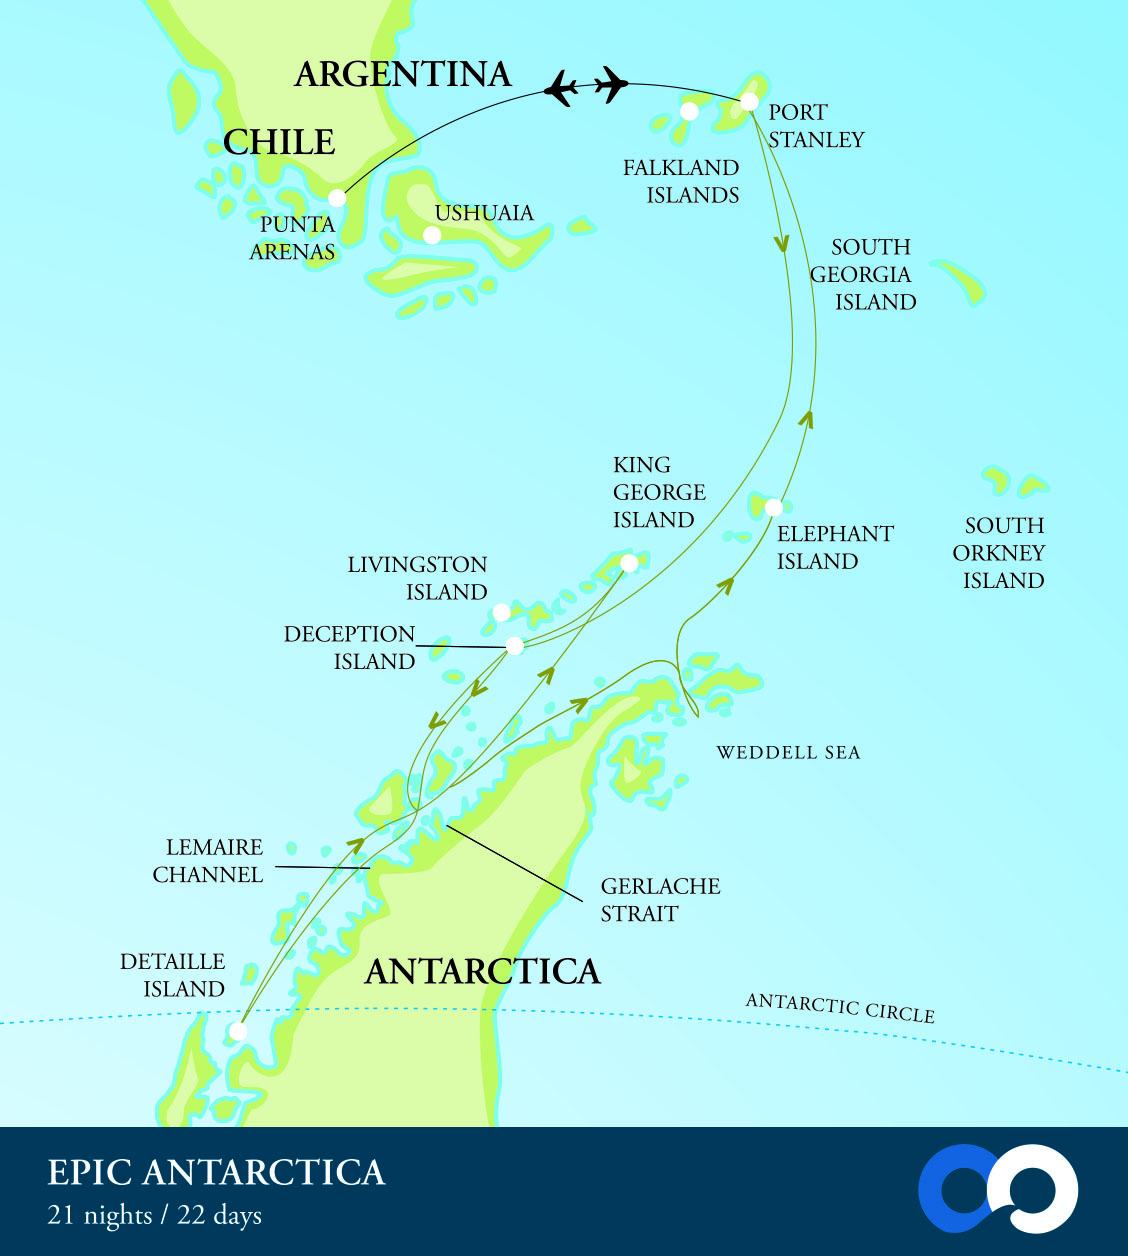 Vacation for more than 20 days in Antarctica. Travel on an expedition cruise ship to Antarctica and explore Antarctic wildlife in depth.